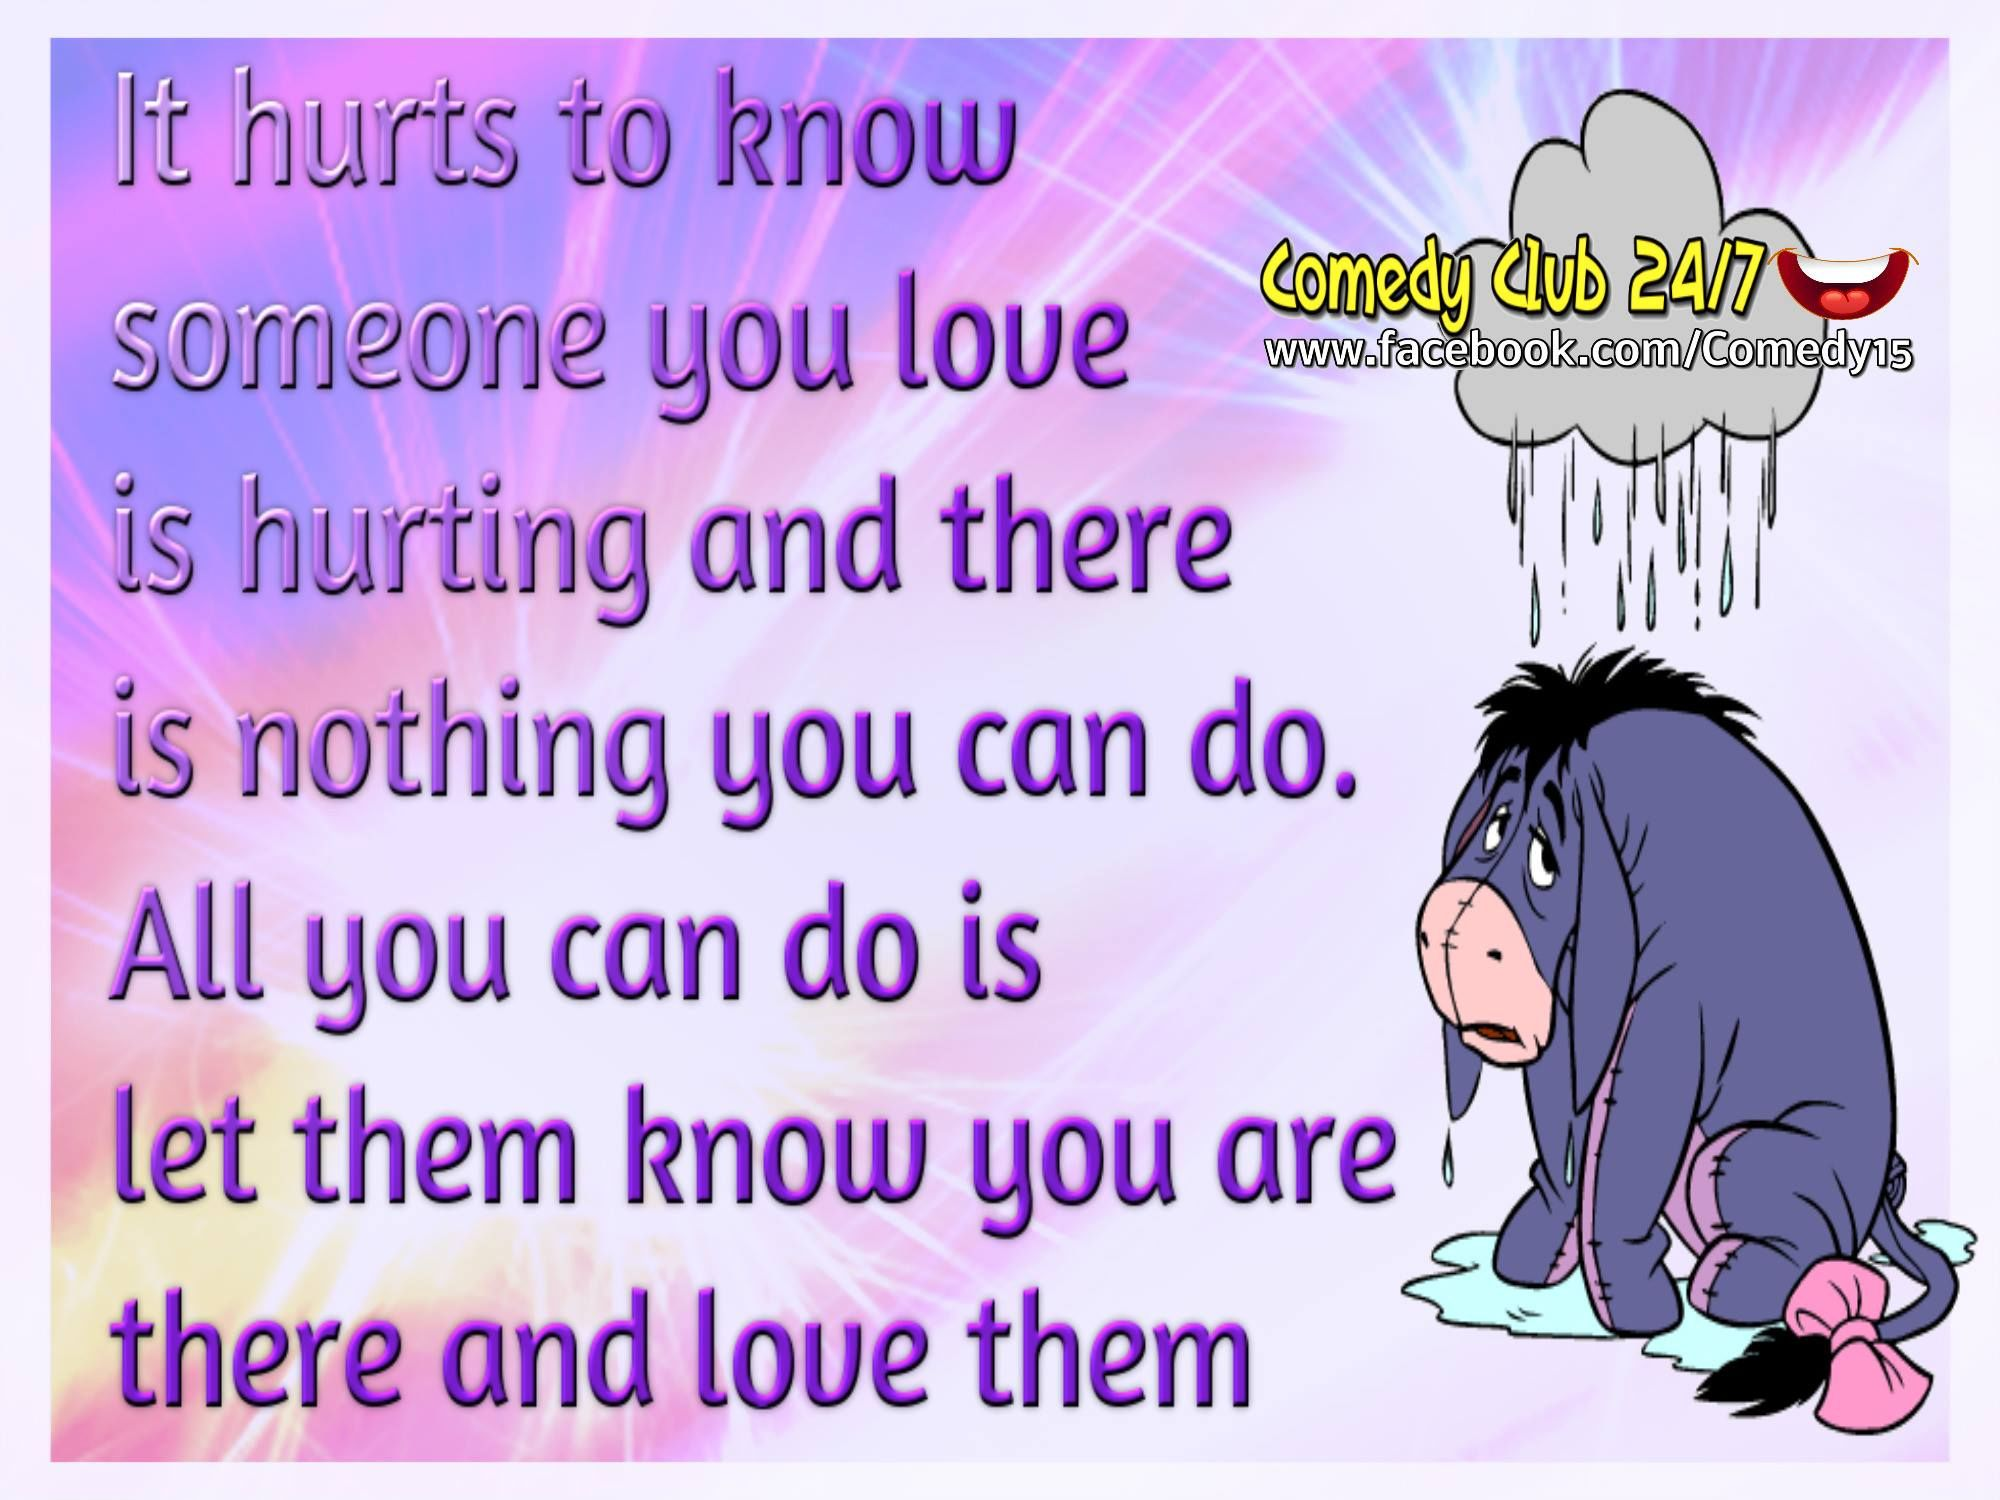 It Hurts When AOmeone You Know Is Hurting And There Is Nothing You Can Do  About It